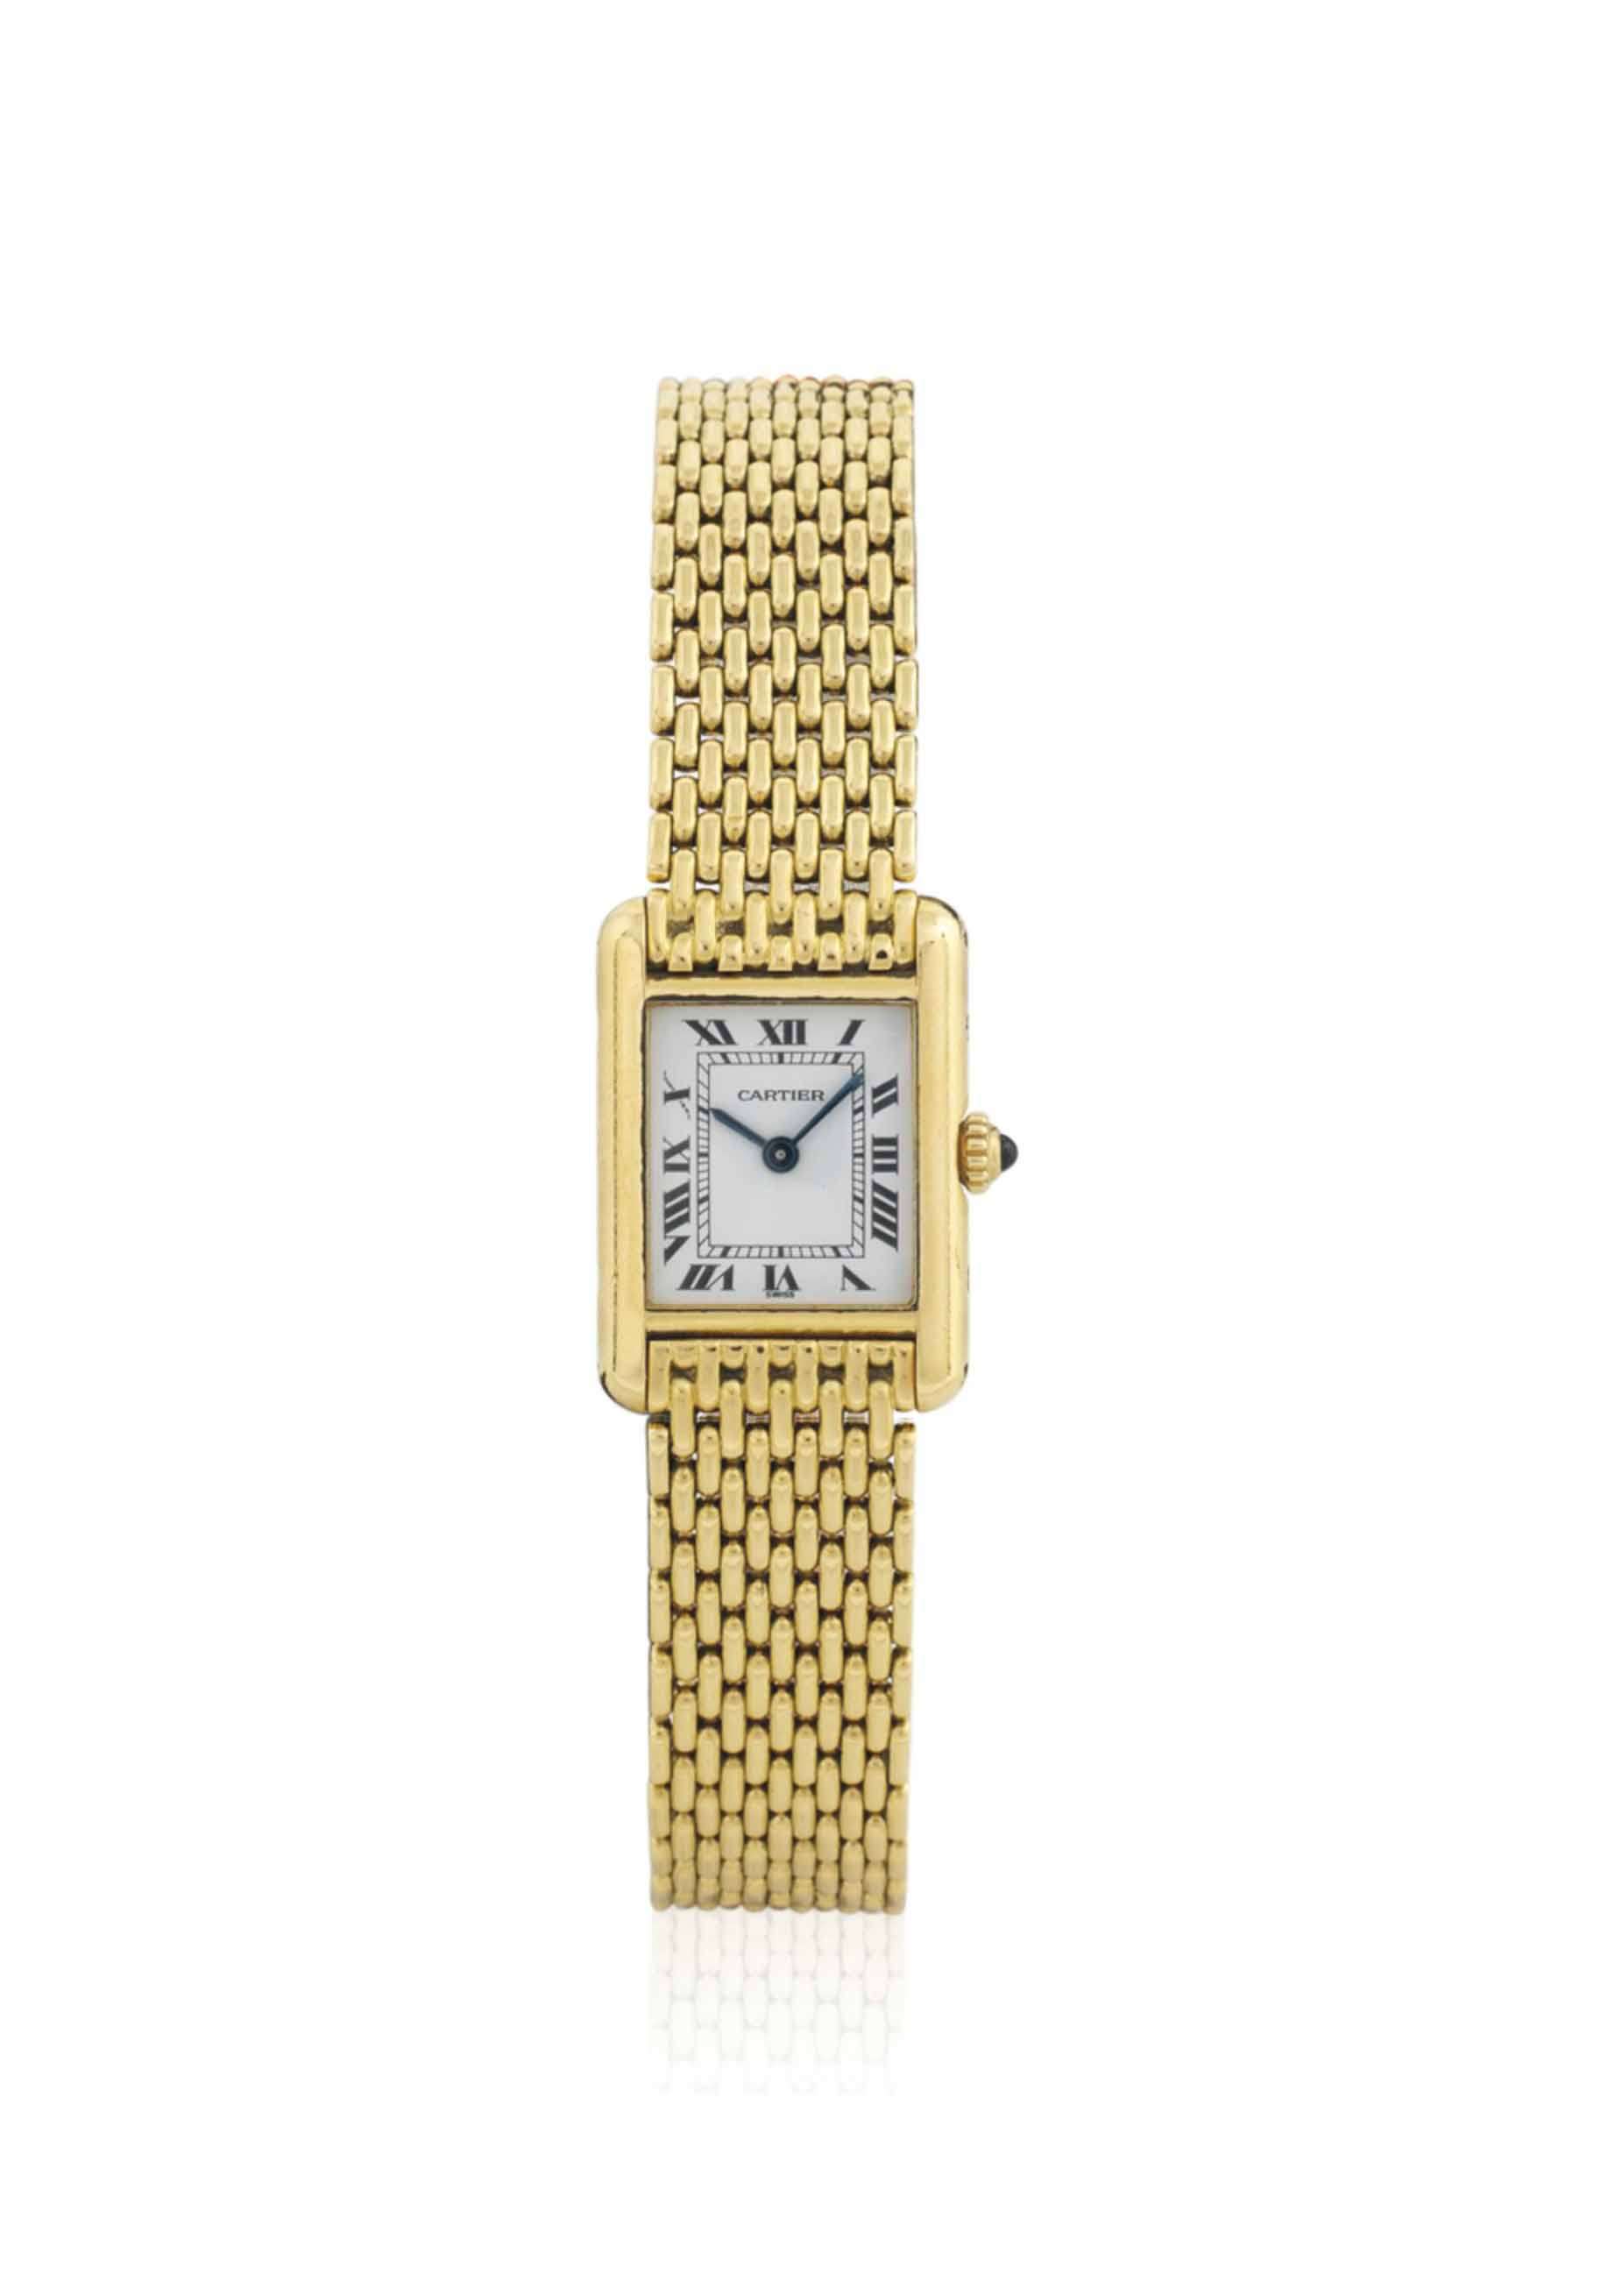 18 Carat Rose Gold: A LADY'S 18 CARAT GOLD 'TANK' WRISTWATCH, BY CARTIER